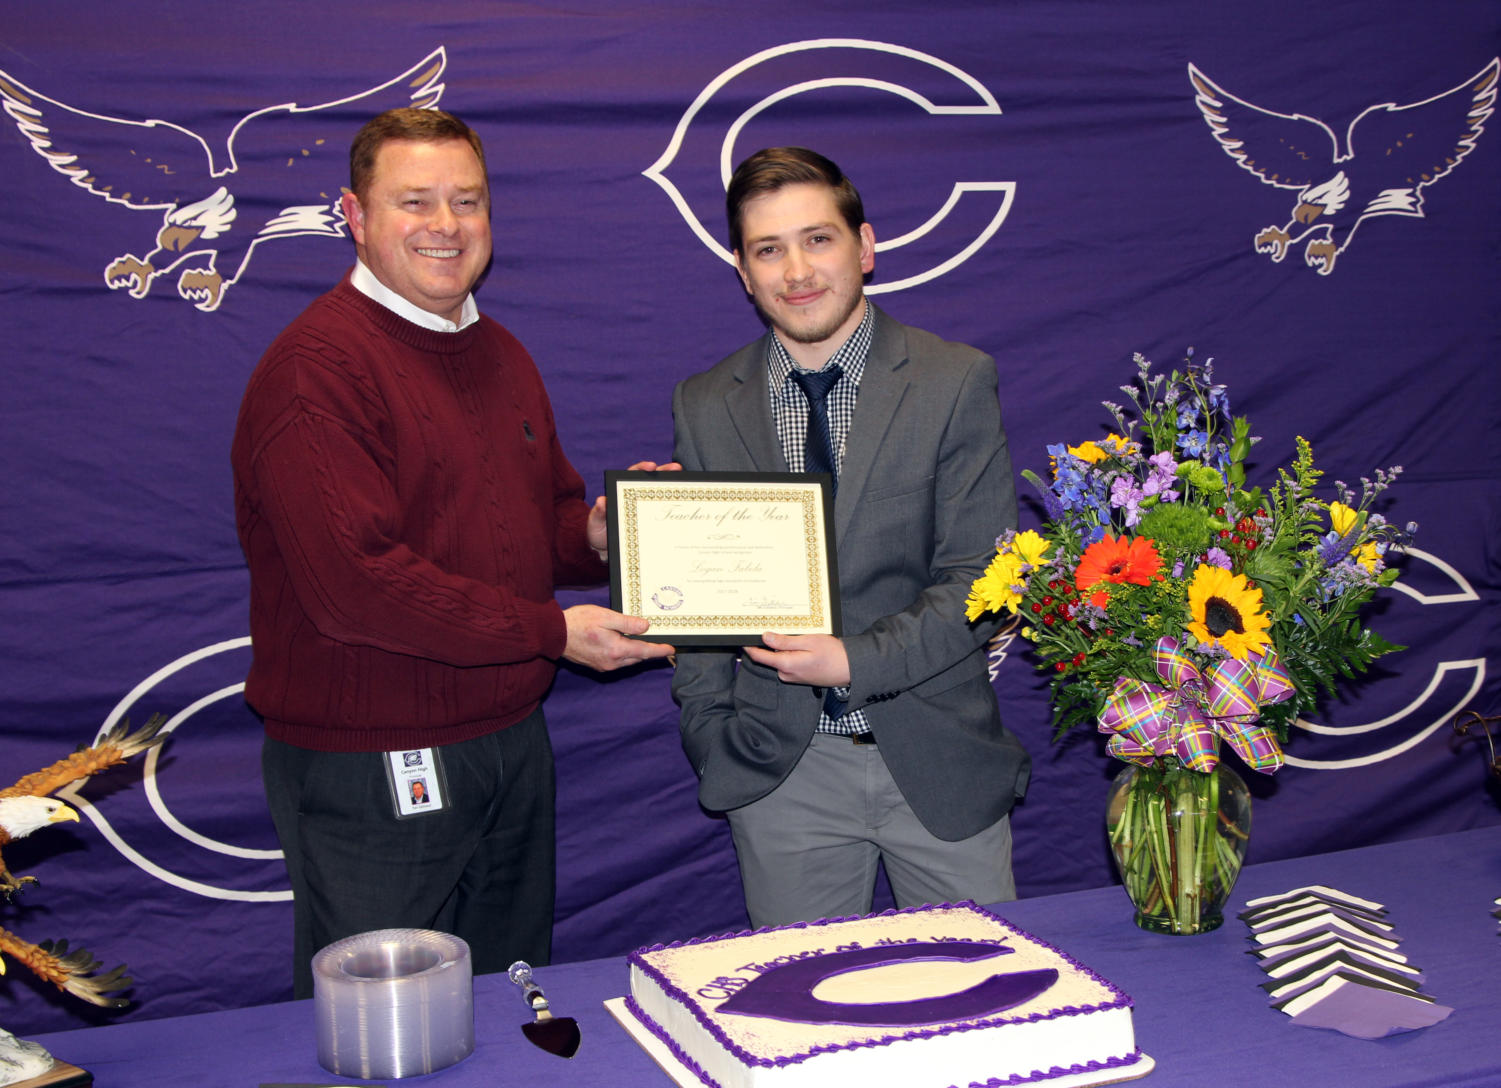 Principal Tim Gilliland awards math teacher Logan Fabela with 'Teacher of the Year'.